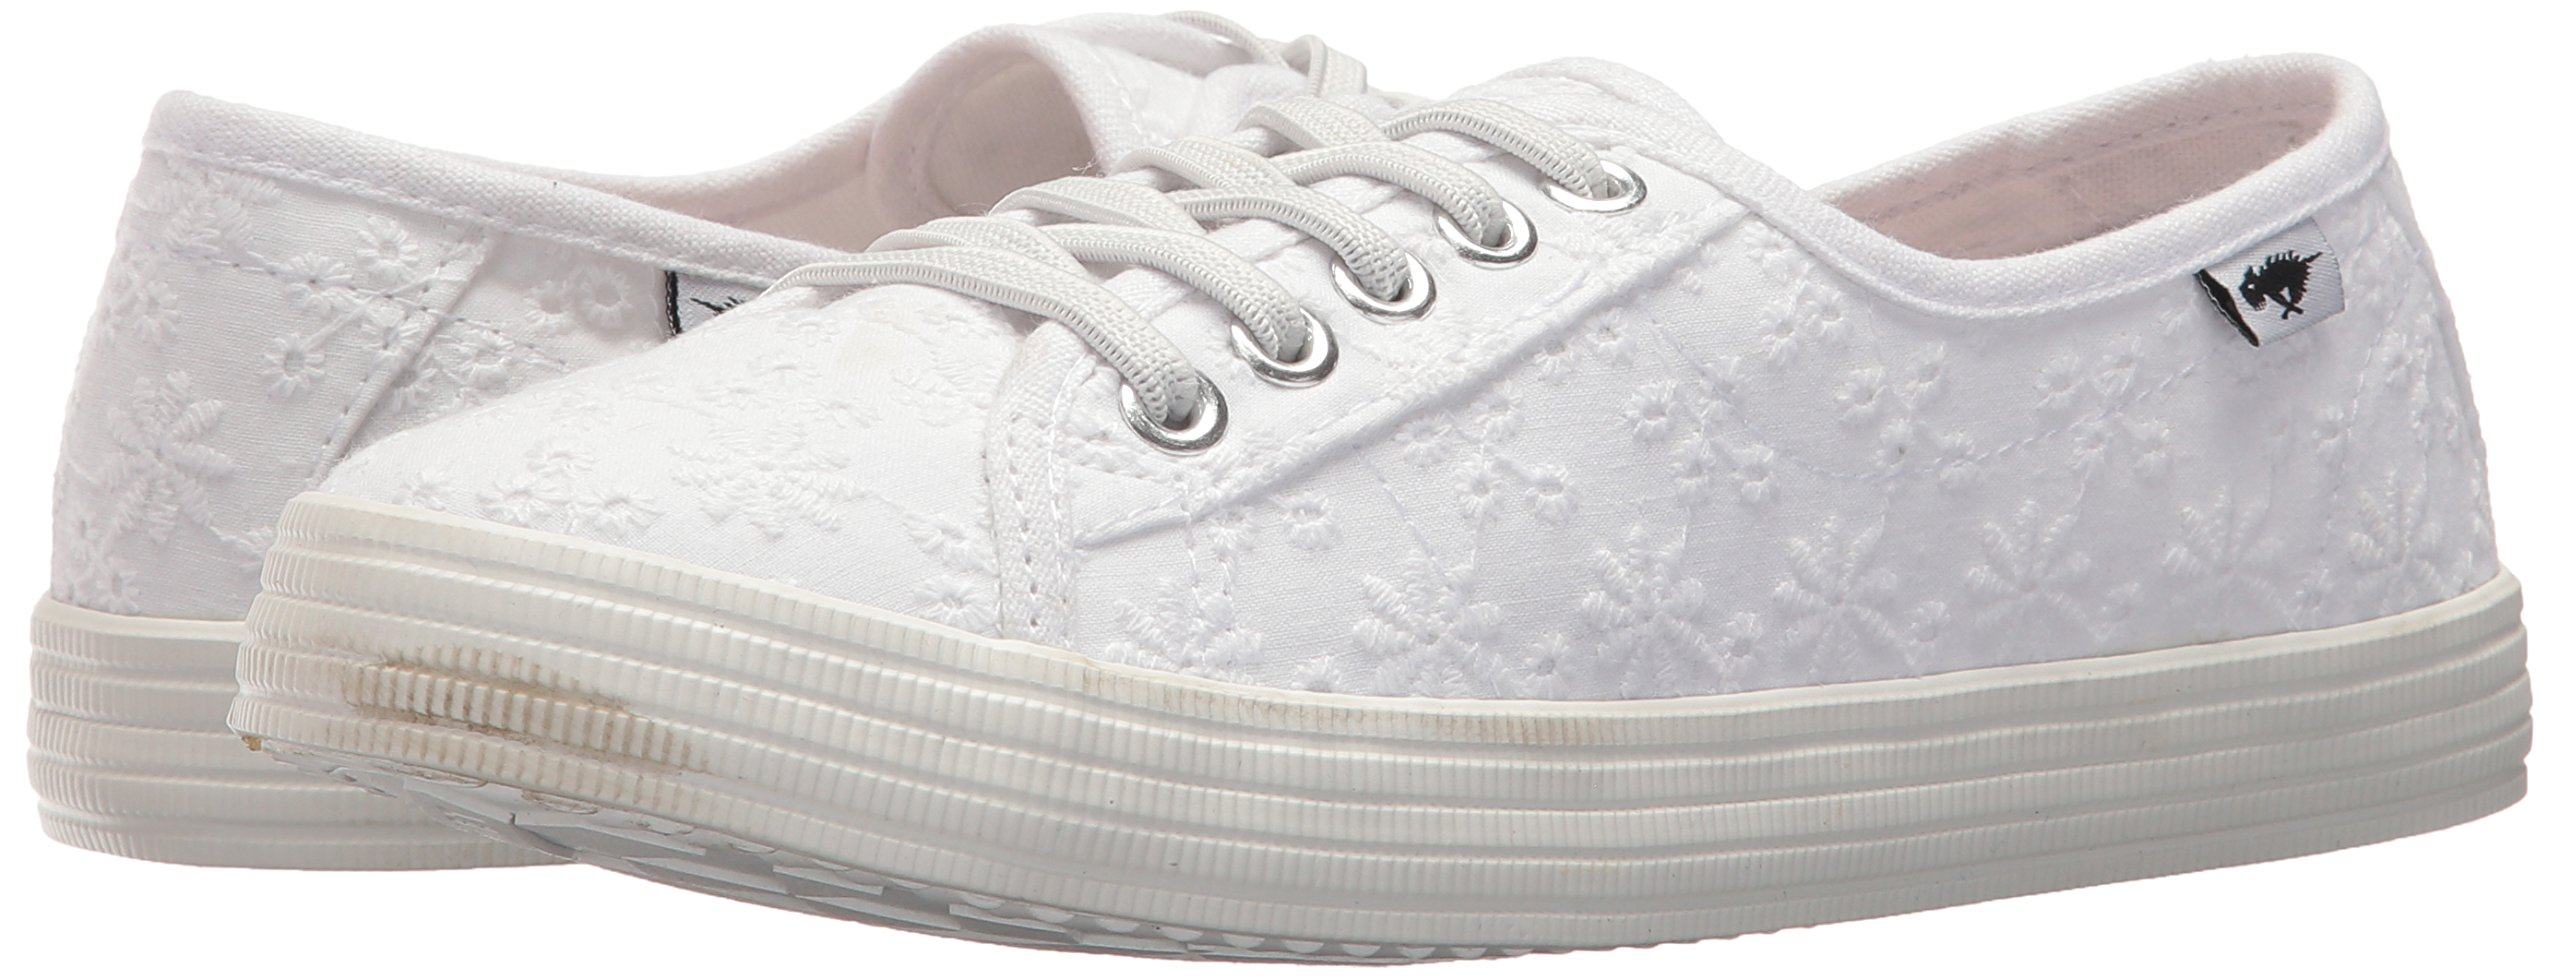 Rocket Dog Women's Chowchow Lucky Eyelet Cotton Sneaker, White, 9.5 Medium US by Rocket Dog (Image #5)